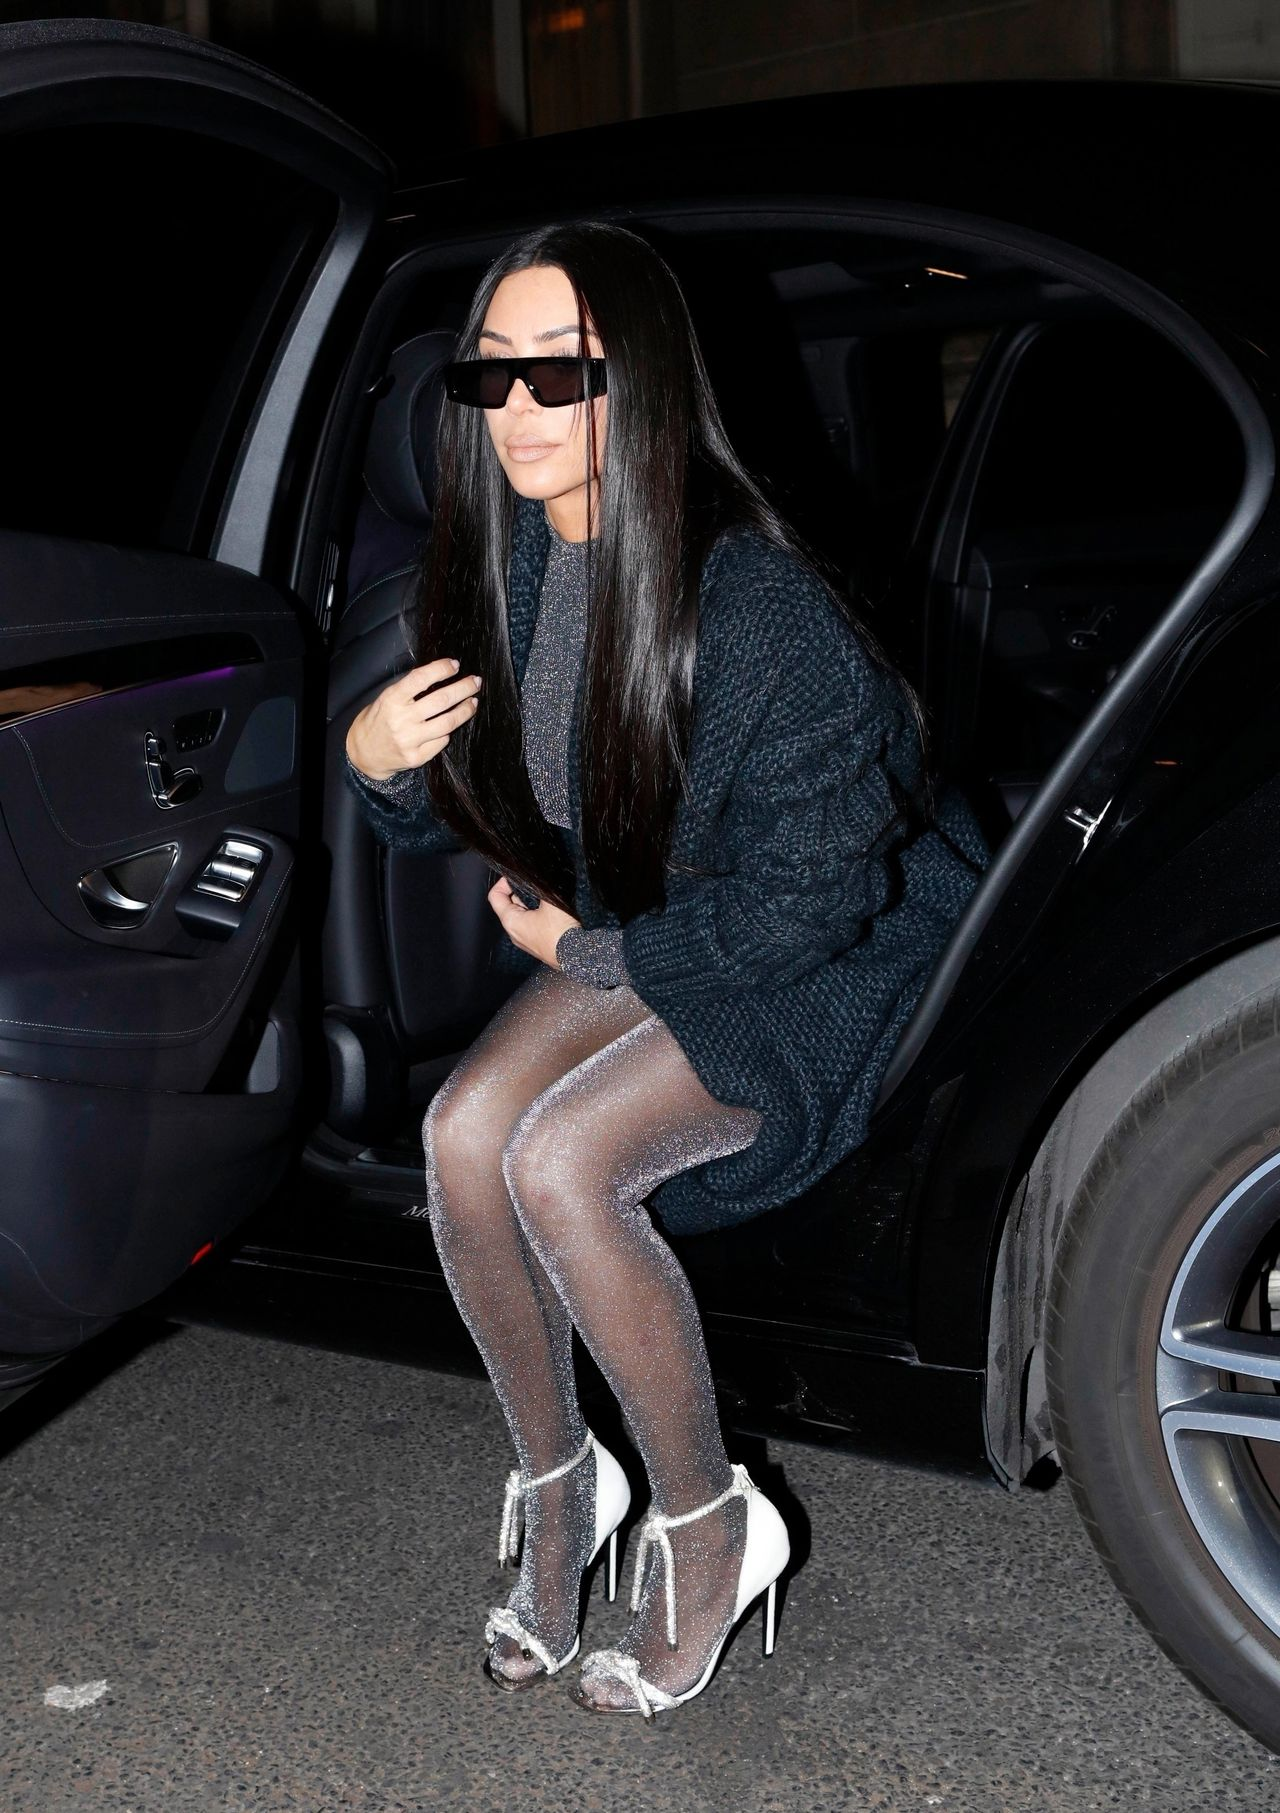 Kim Kardashian shows off her famous curves in sparkling grey unitard as she leaves her hotel in Paris / No credit / BACKGRID , kod: Kim Kardashian